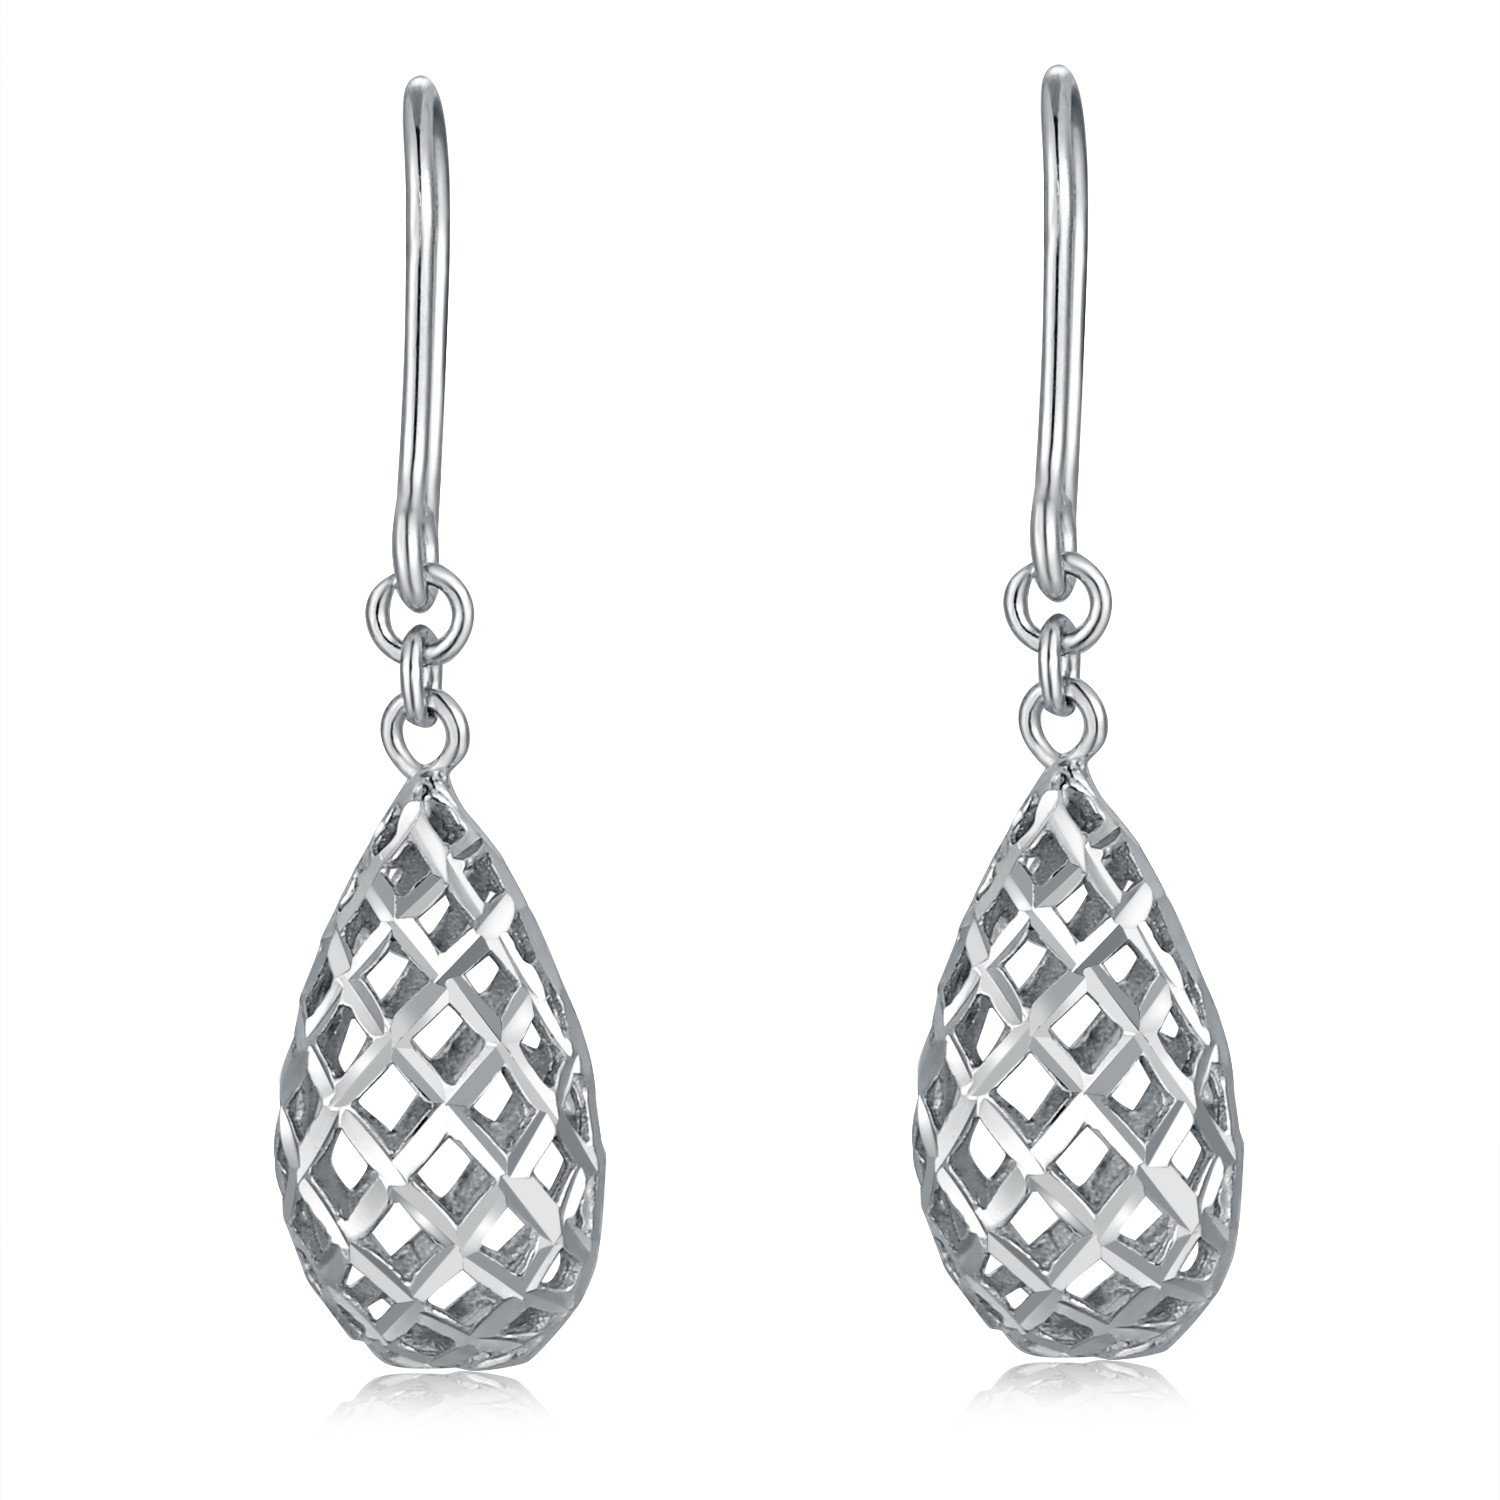 Amazon MaBelle 14K Italian White Gold 3D Puffed Filigree